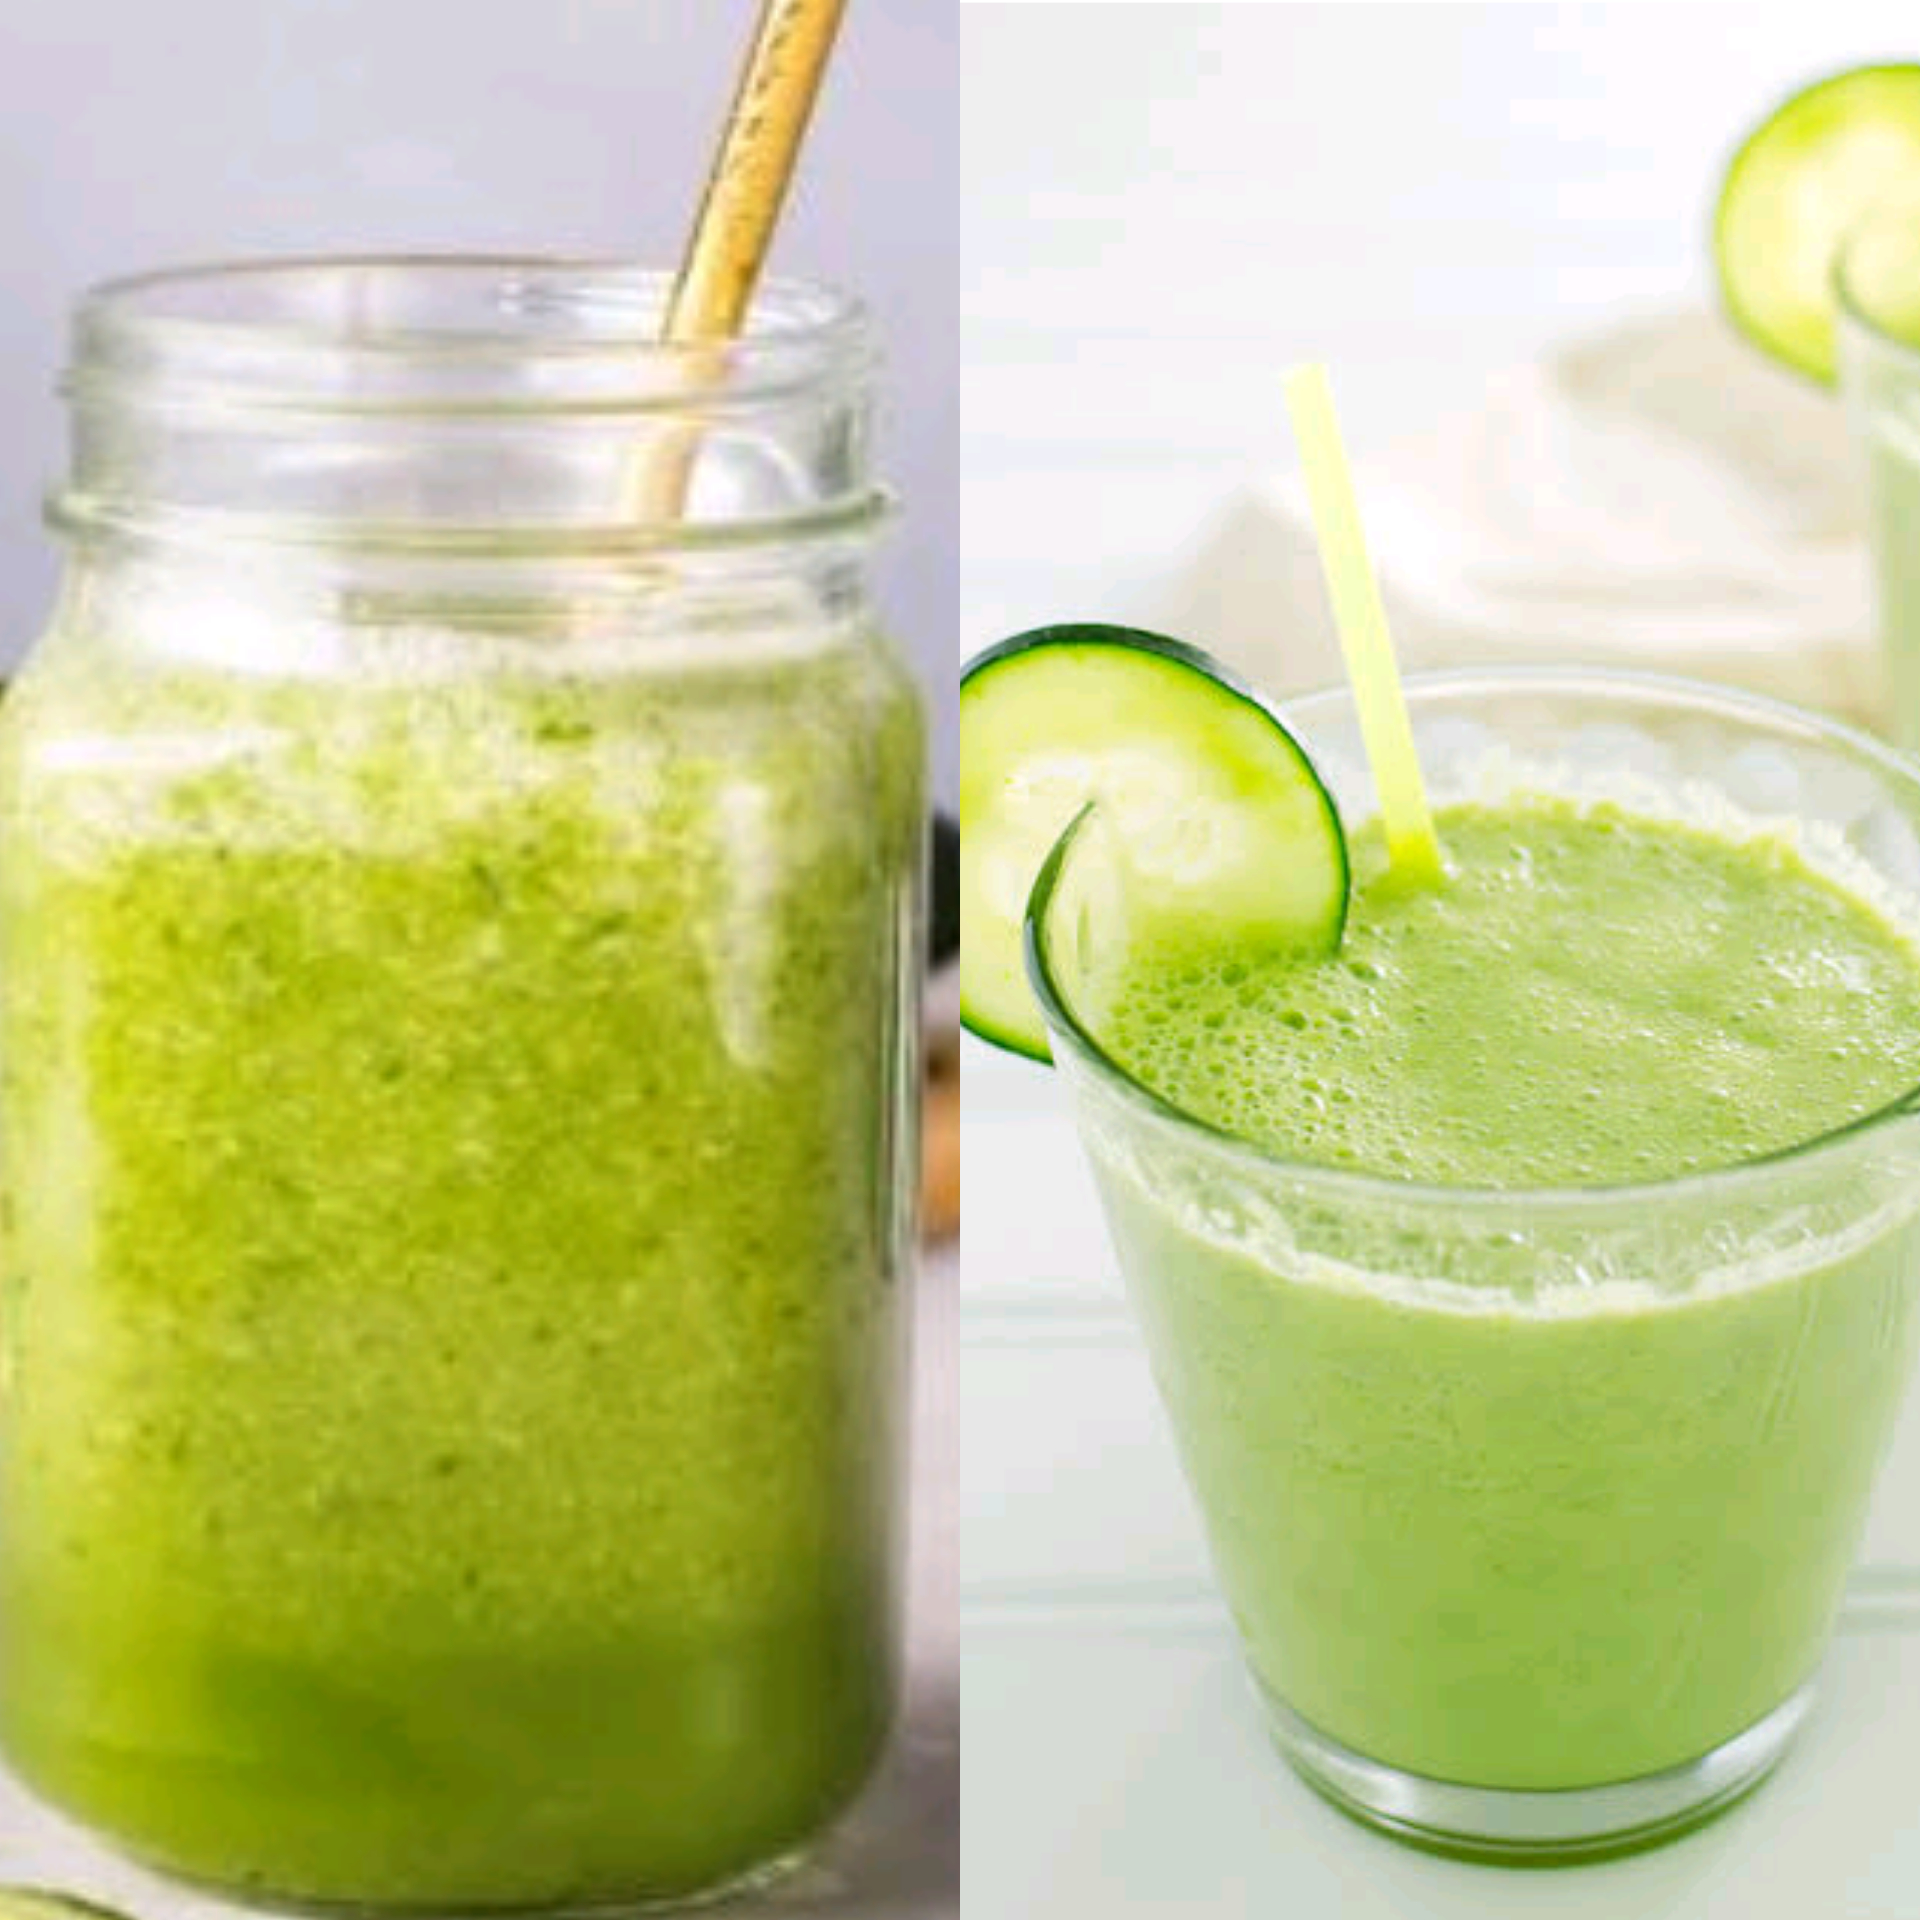 Natural Health Benefits Of Cucumber, Lemon and Ginger Juice You Should Know